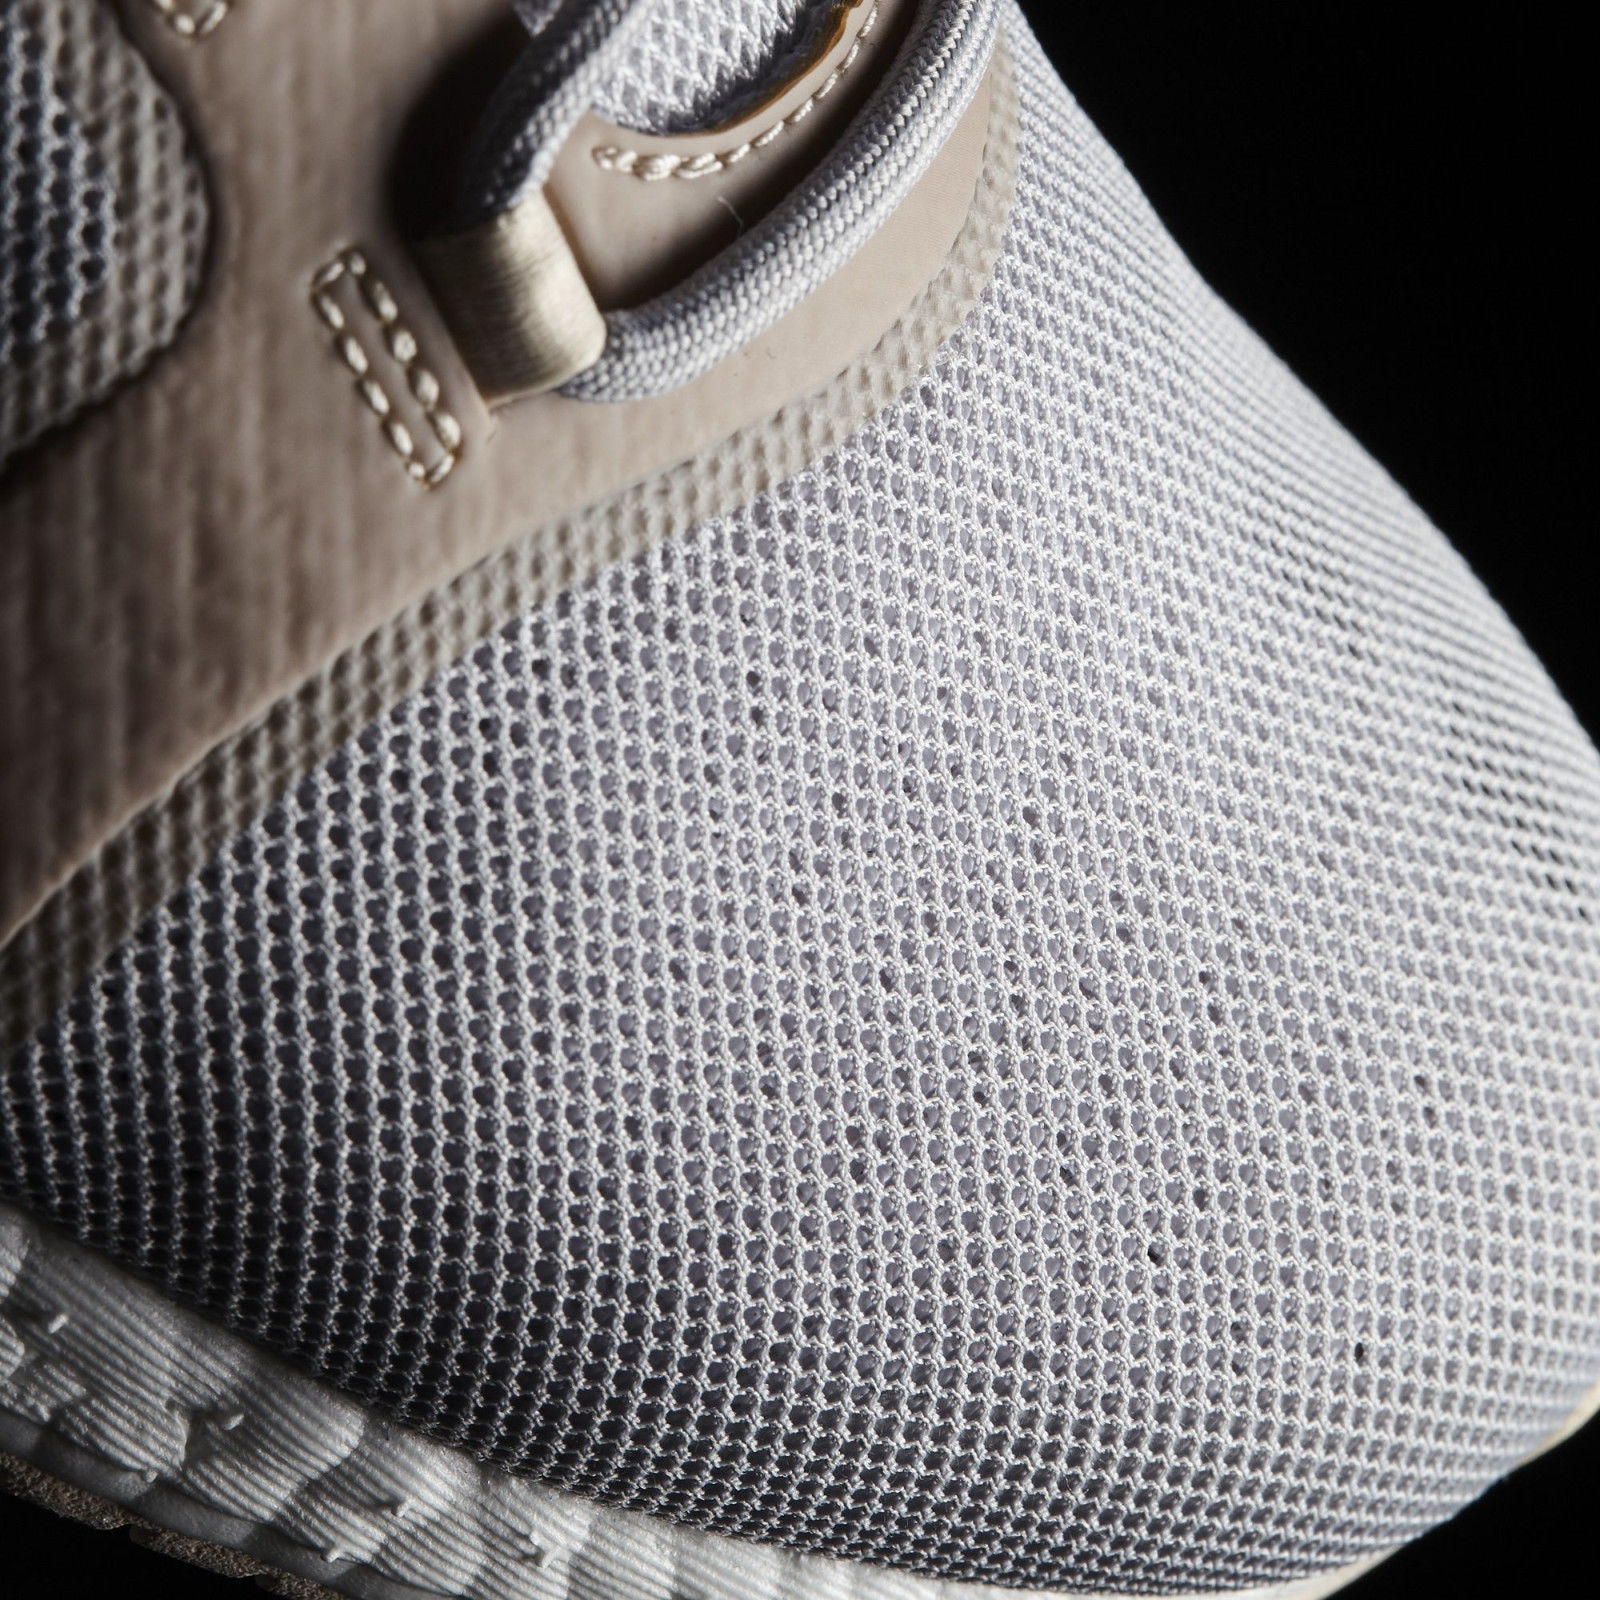 ADIDAS PURE BOOST X TRAINER 2.0 GREY/WHITE/TAN RUNNING SHOES BRAND NEW (BB3286)